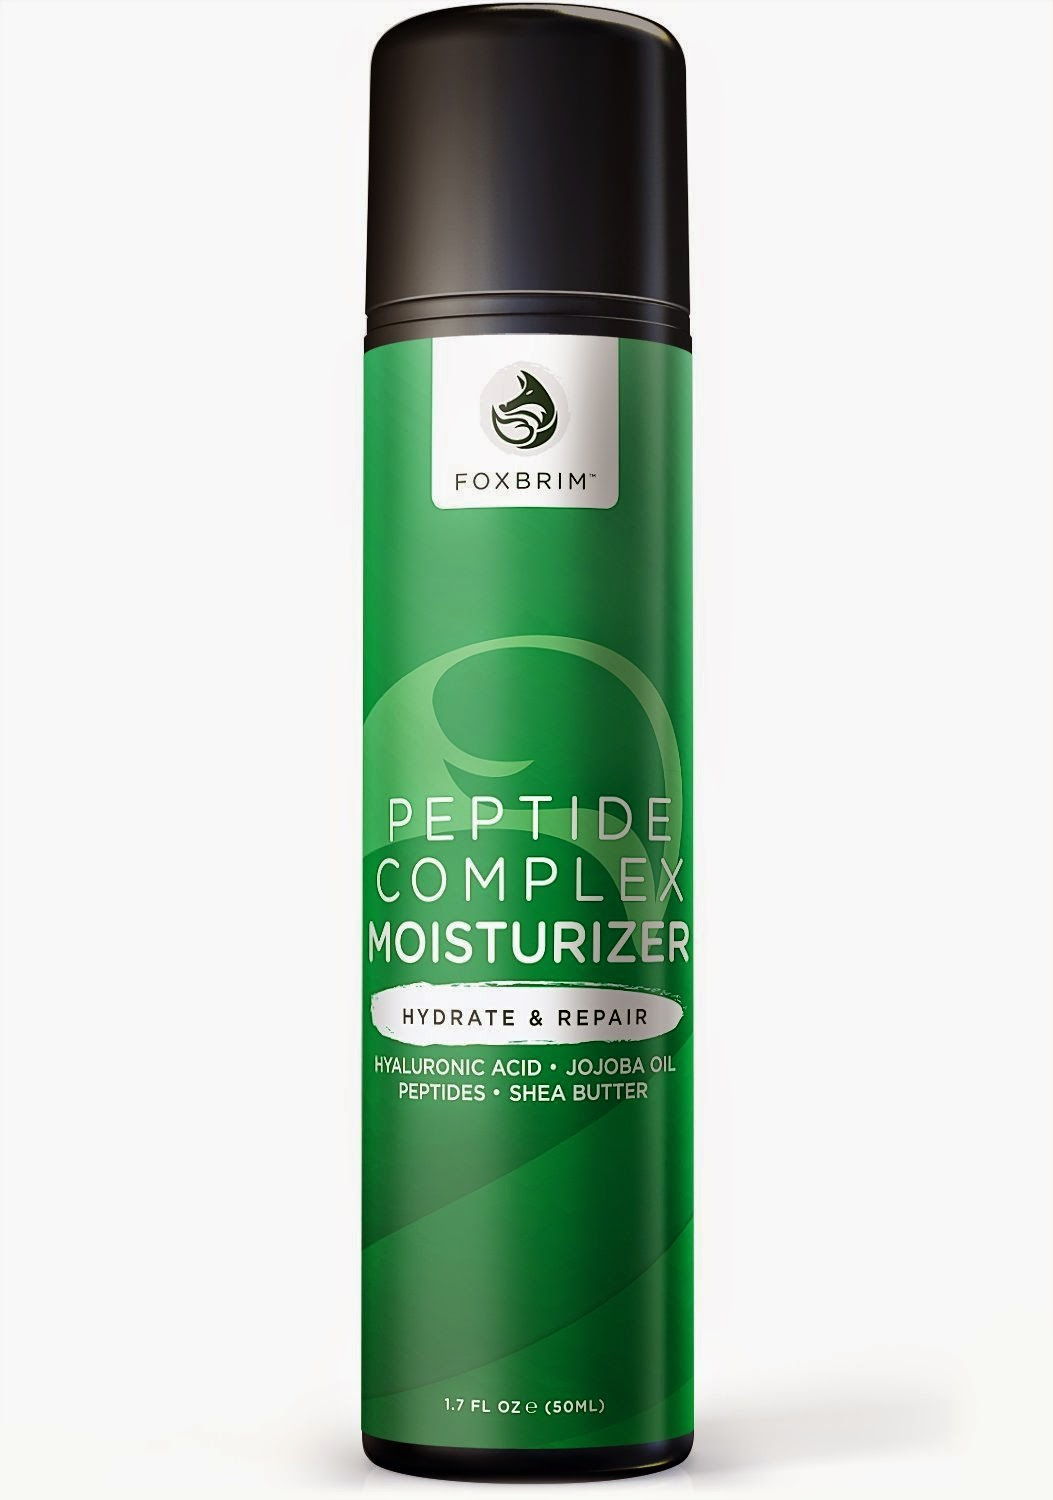 http://www.amazon.com/Peptide-Complex-Moisturizer-Ingredients-Lightweight/dp/B00UB3C2NY/ref=sr_1_2?ie=UTF8&qid=1427950057&sr=8-2&keywords=foxbrim+peptide+complex+serum